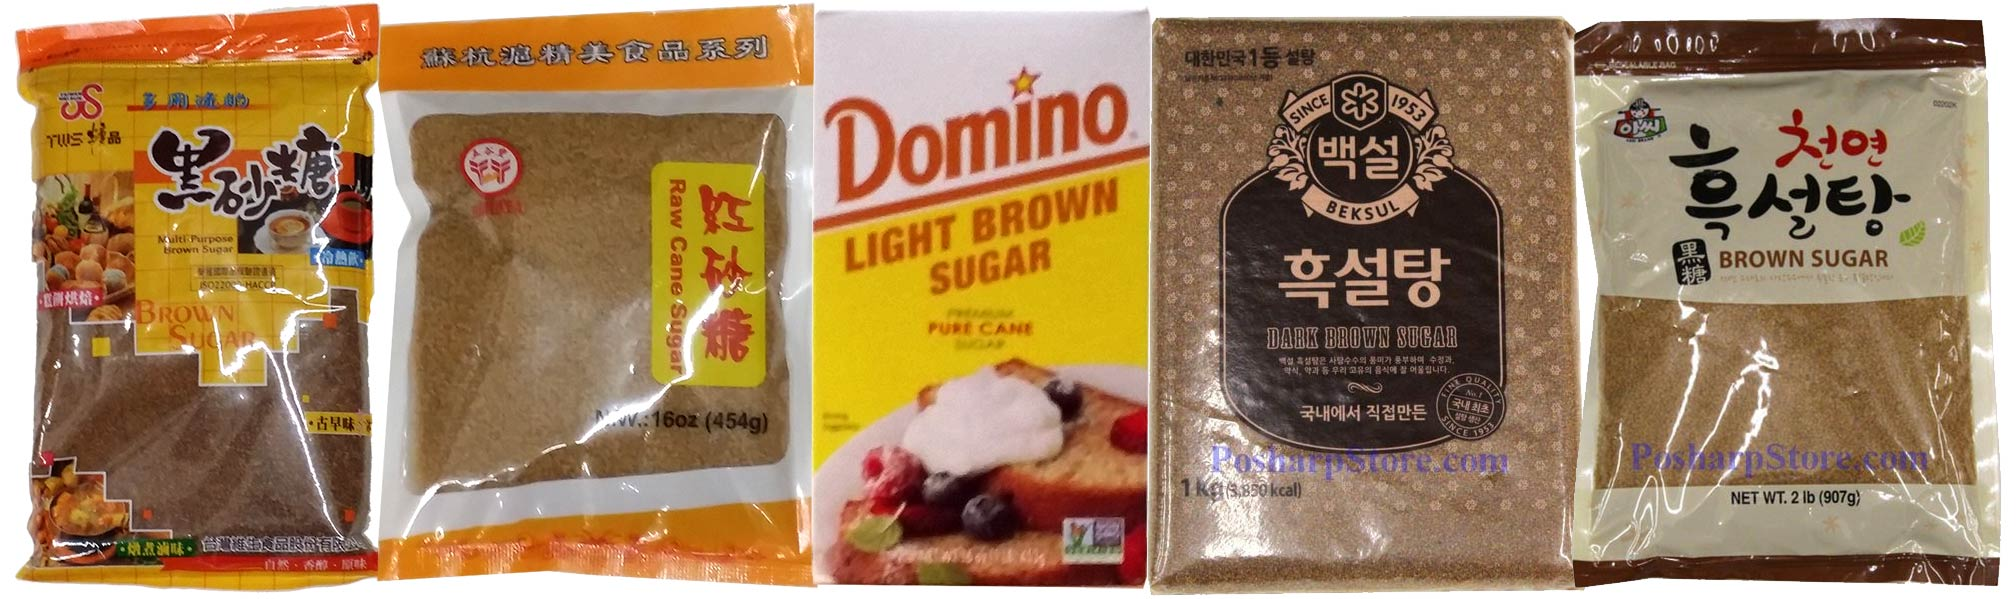 Brown Sugars in US Supermarkets